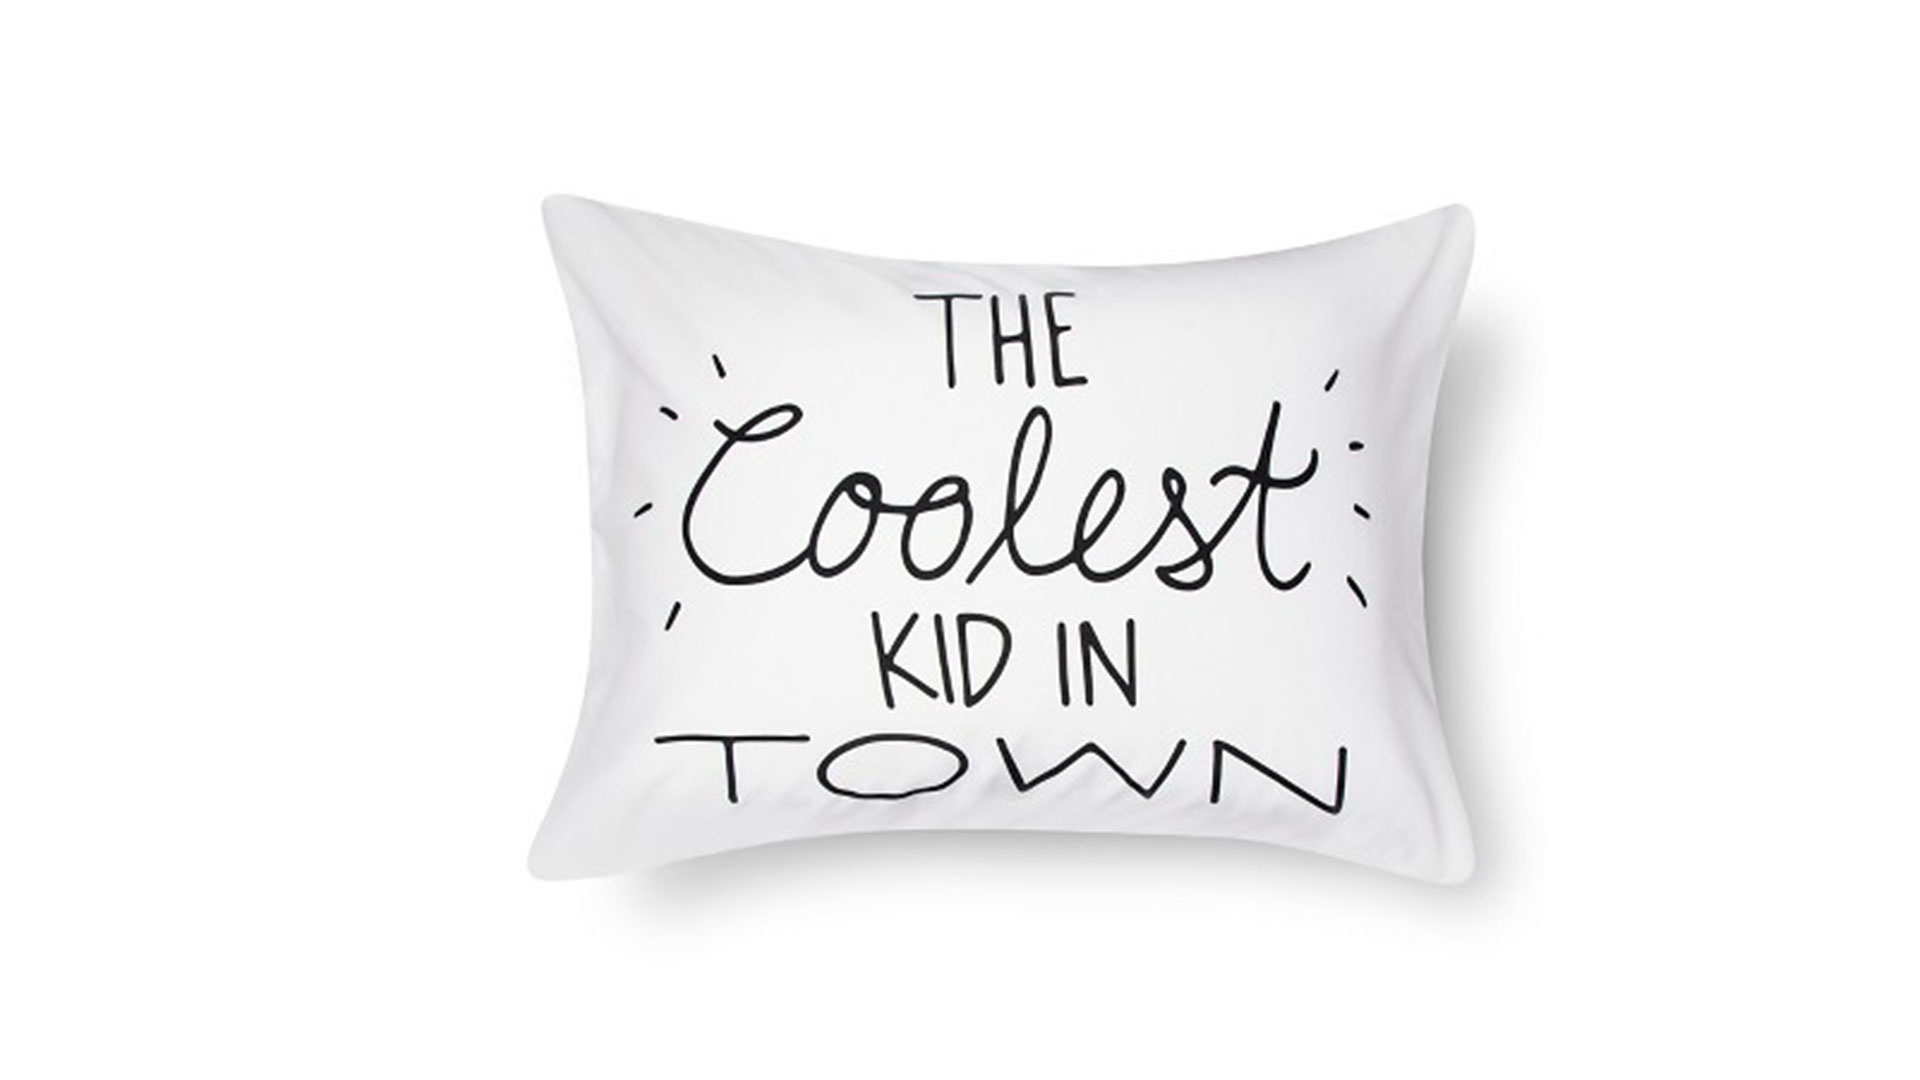 The Coolest Kid In Town Pillowcase